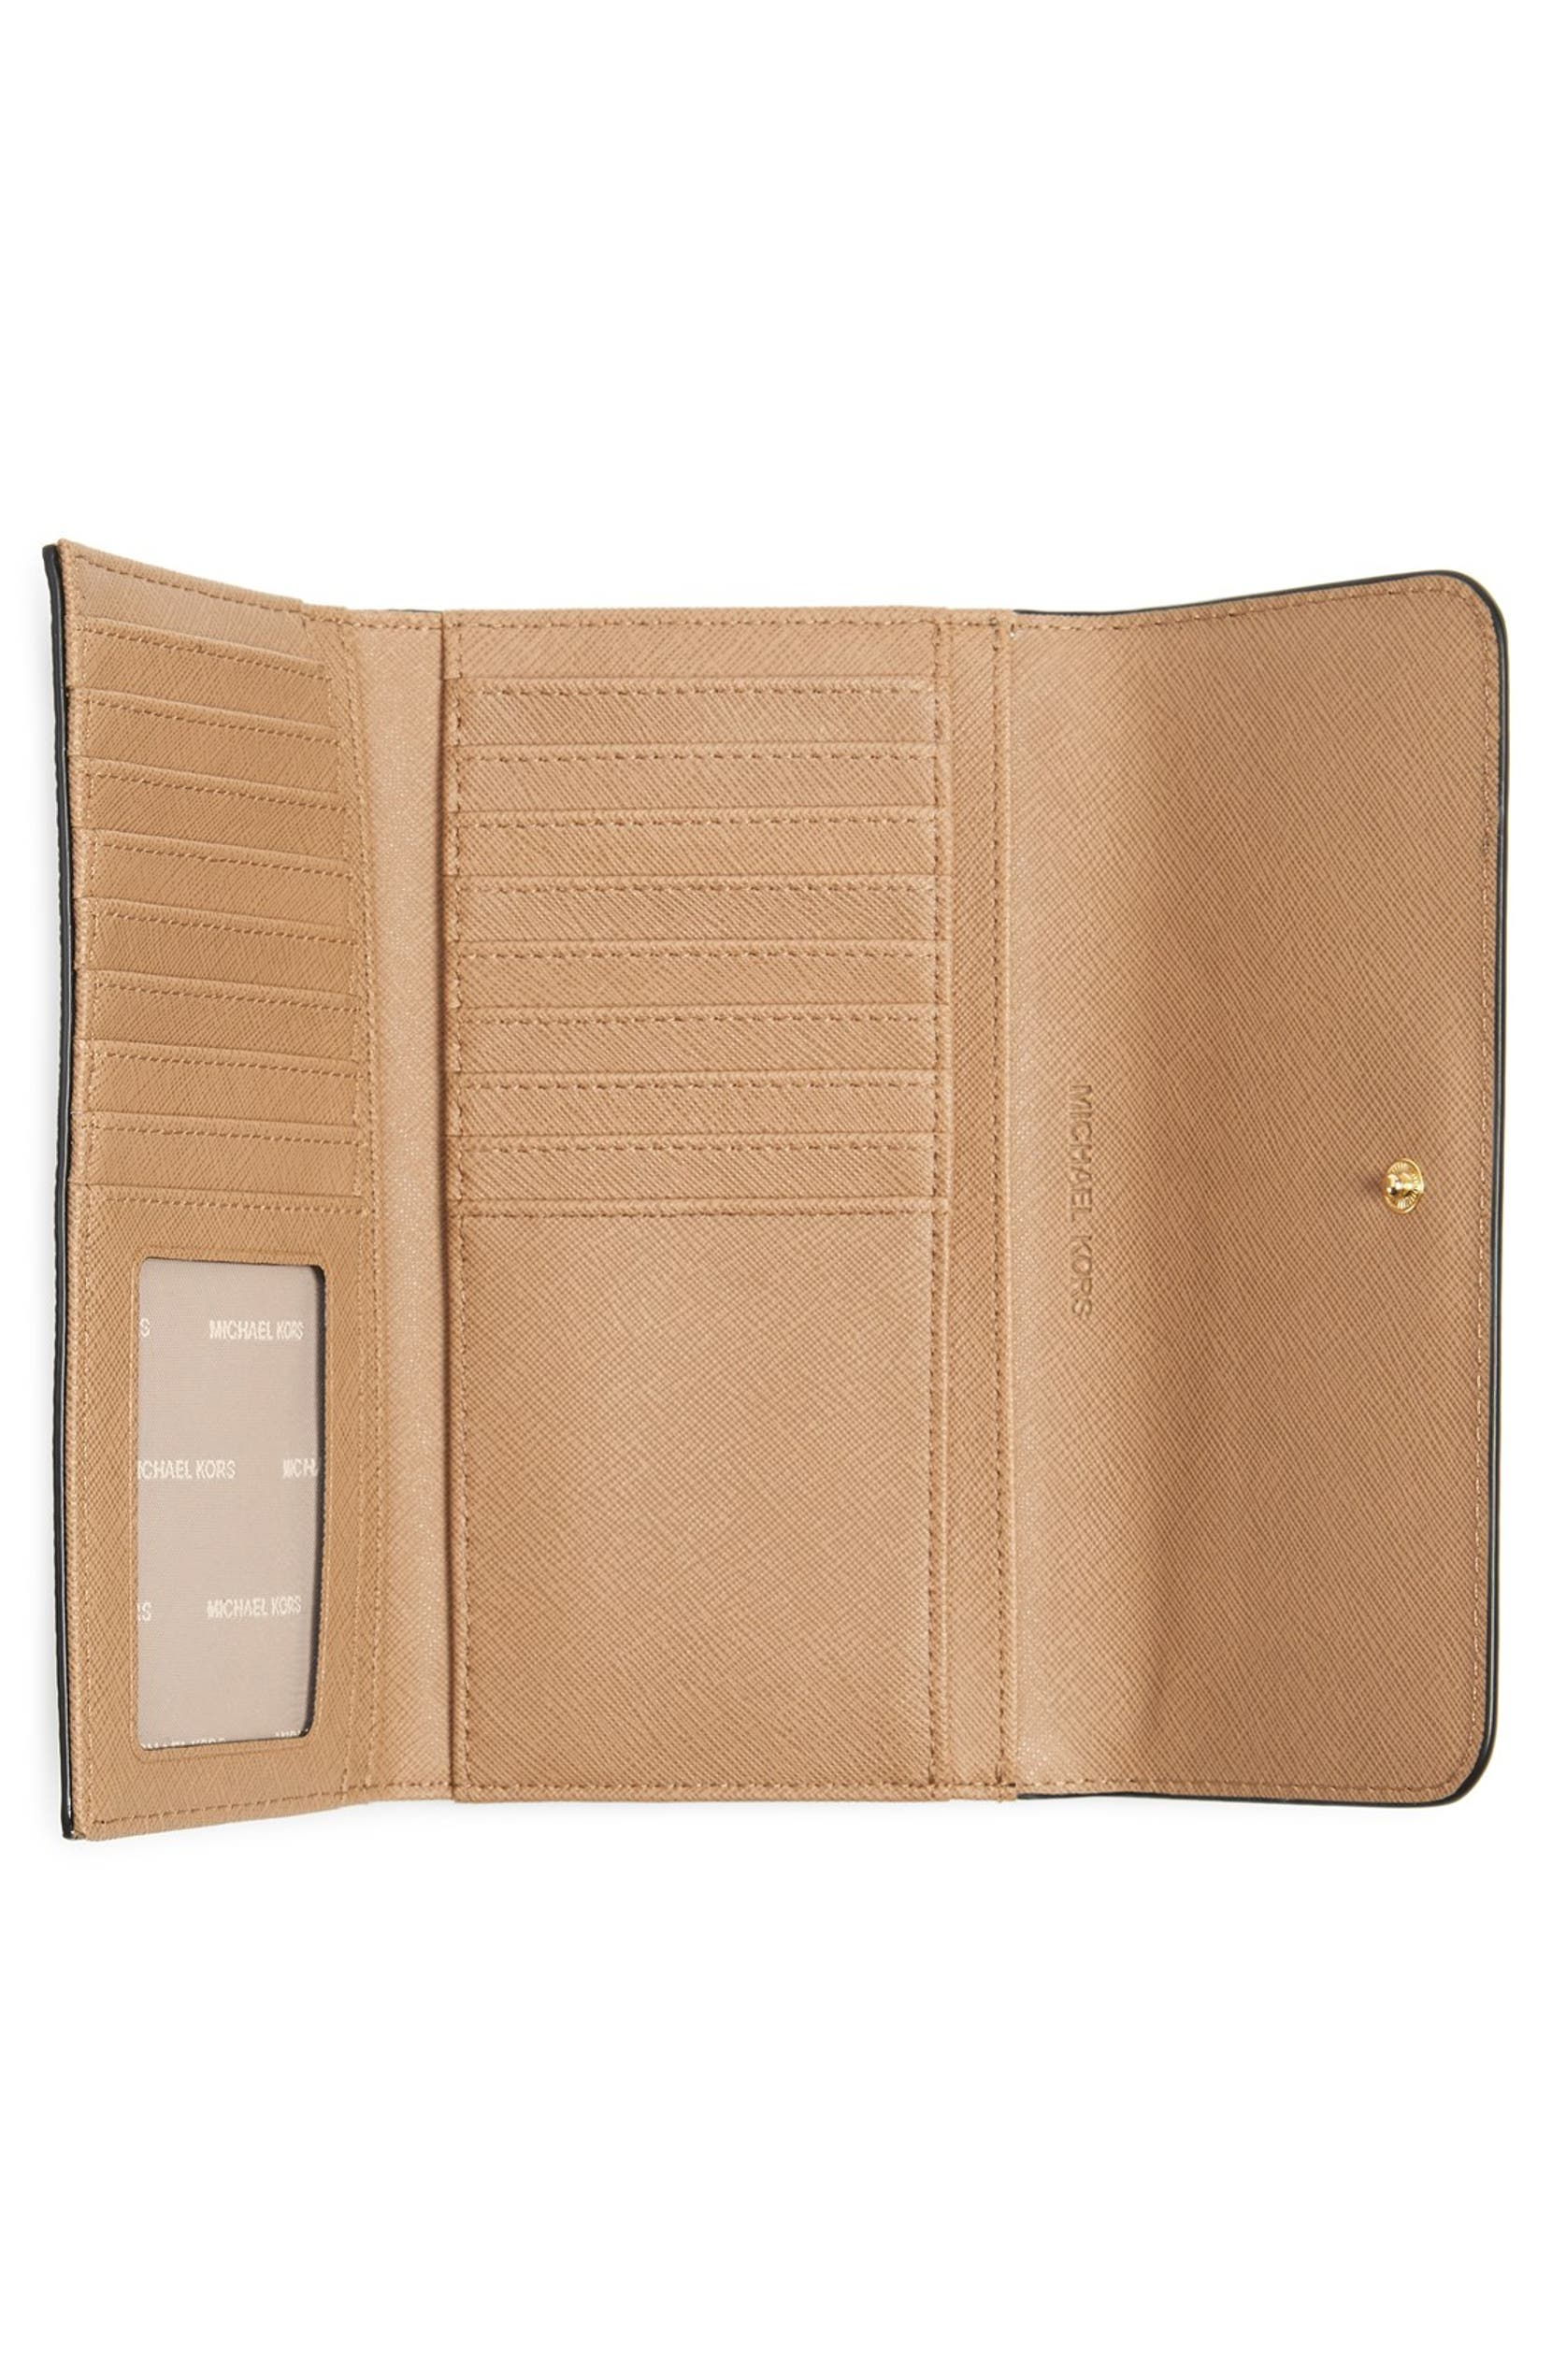 a3193991e476 MICHAEL Michael Kors Mercer Large Trifold Leather Wallet | Nordstrom